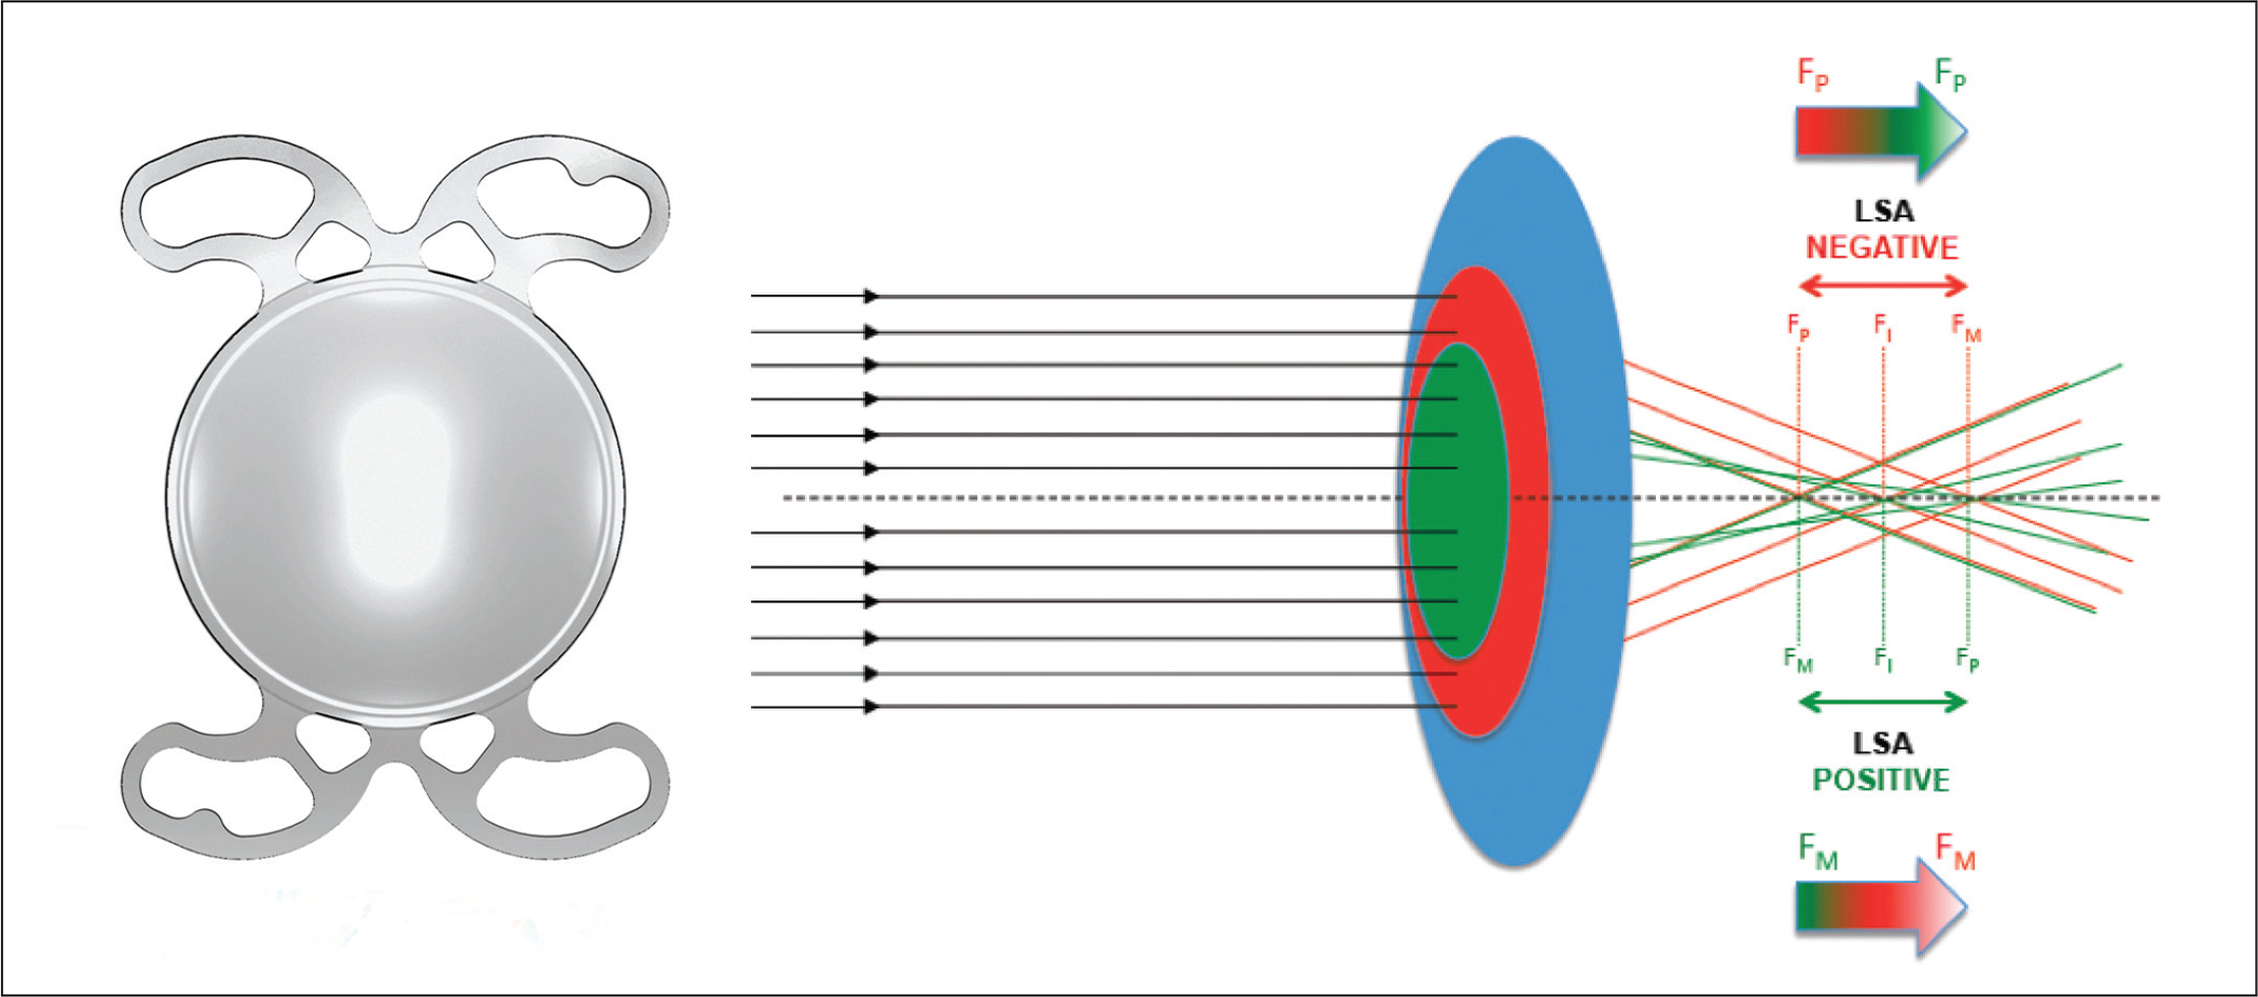 Design and optical principles of the Mini Well (SIFI, Catania, Italy) extended depth-of-focus intraocular lens. (Left) Front image of the lens. (Right) The inner green zone induces a positive spherical aberration with marginal foci (FM) anterior to the paraxial foci (FP); the intermediate red zone induces a negative spherical aberration with FM posterior to FP. The distance between the FP of negative and positive aberration corresponds to continuum foci.